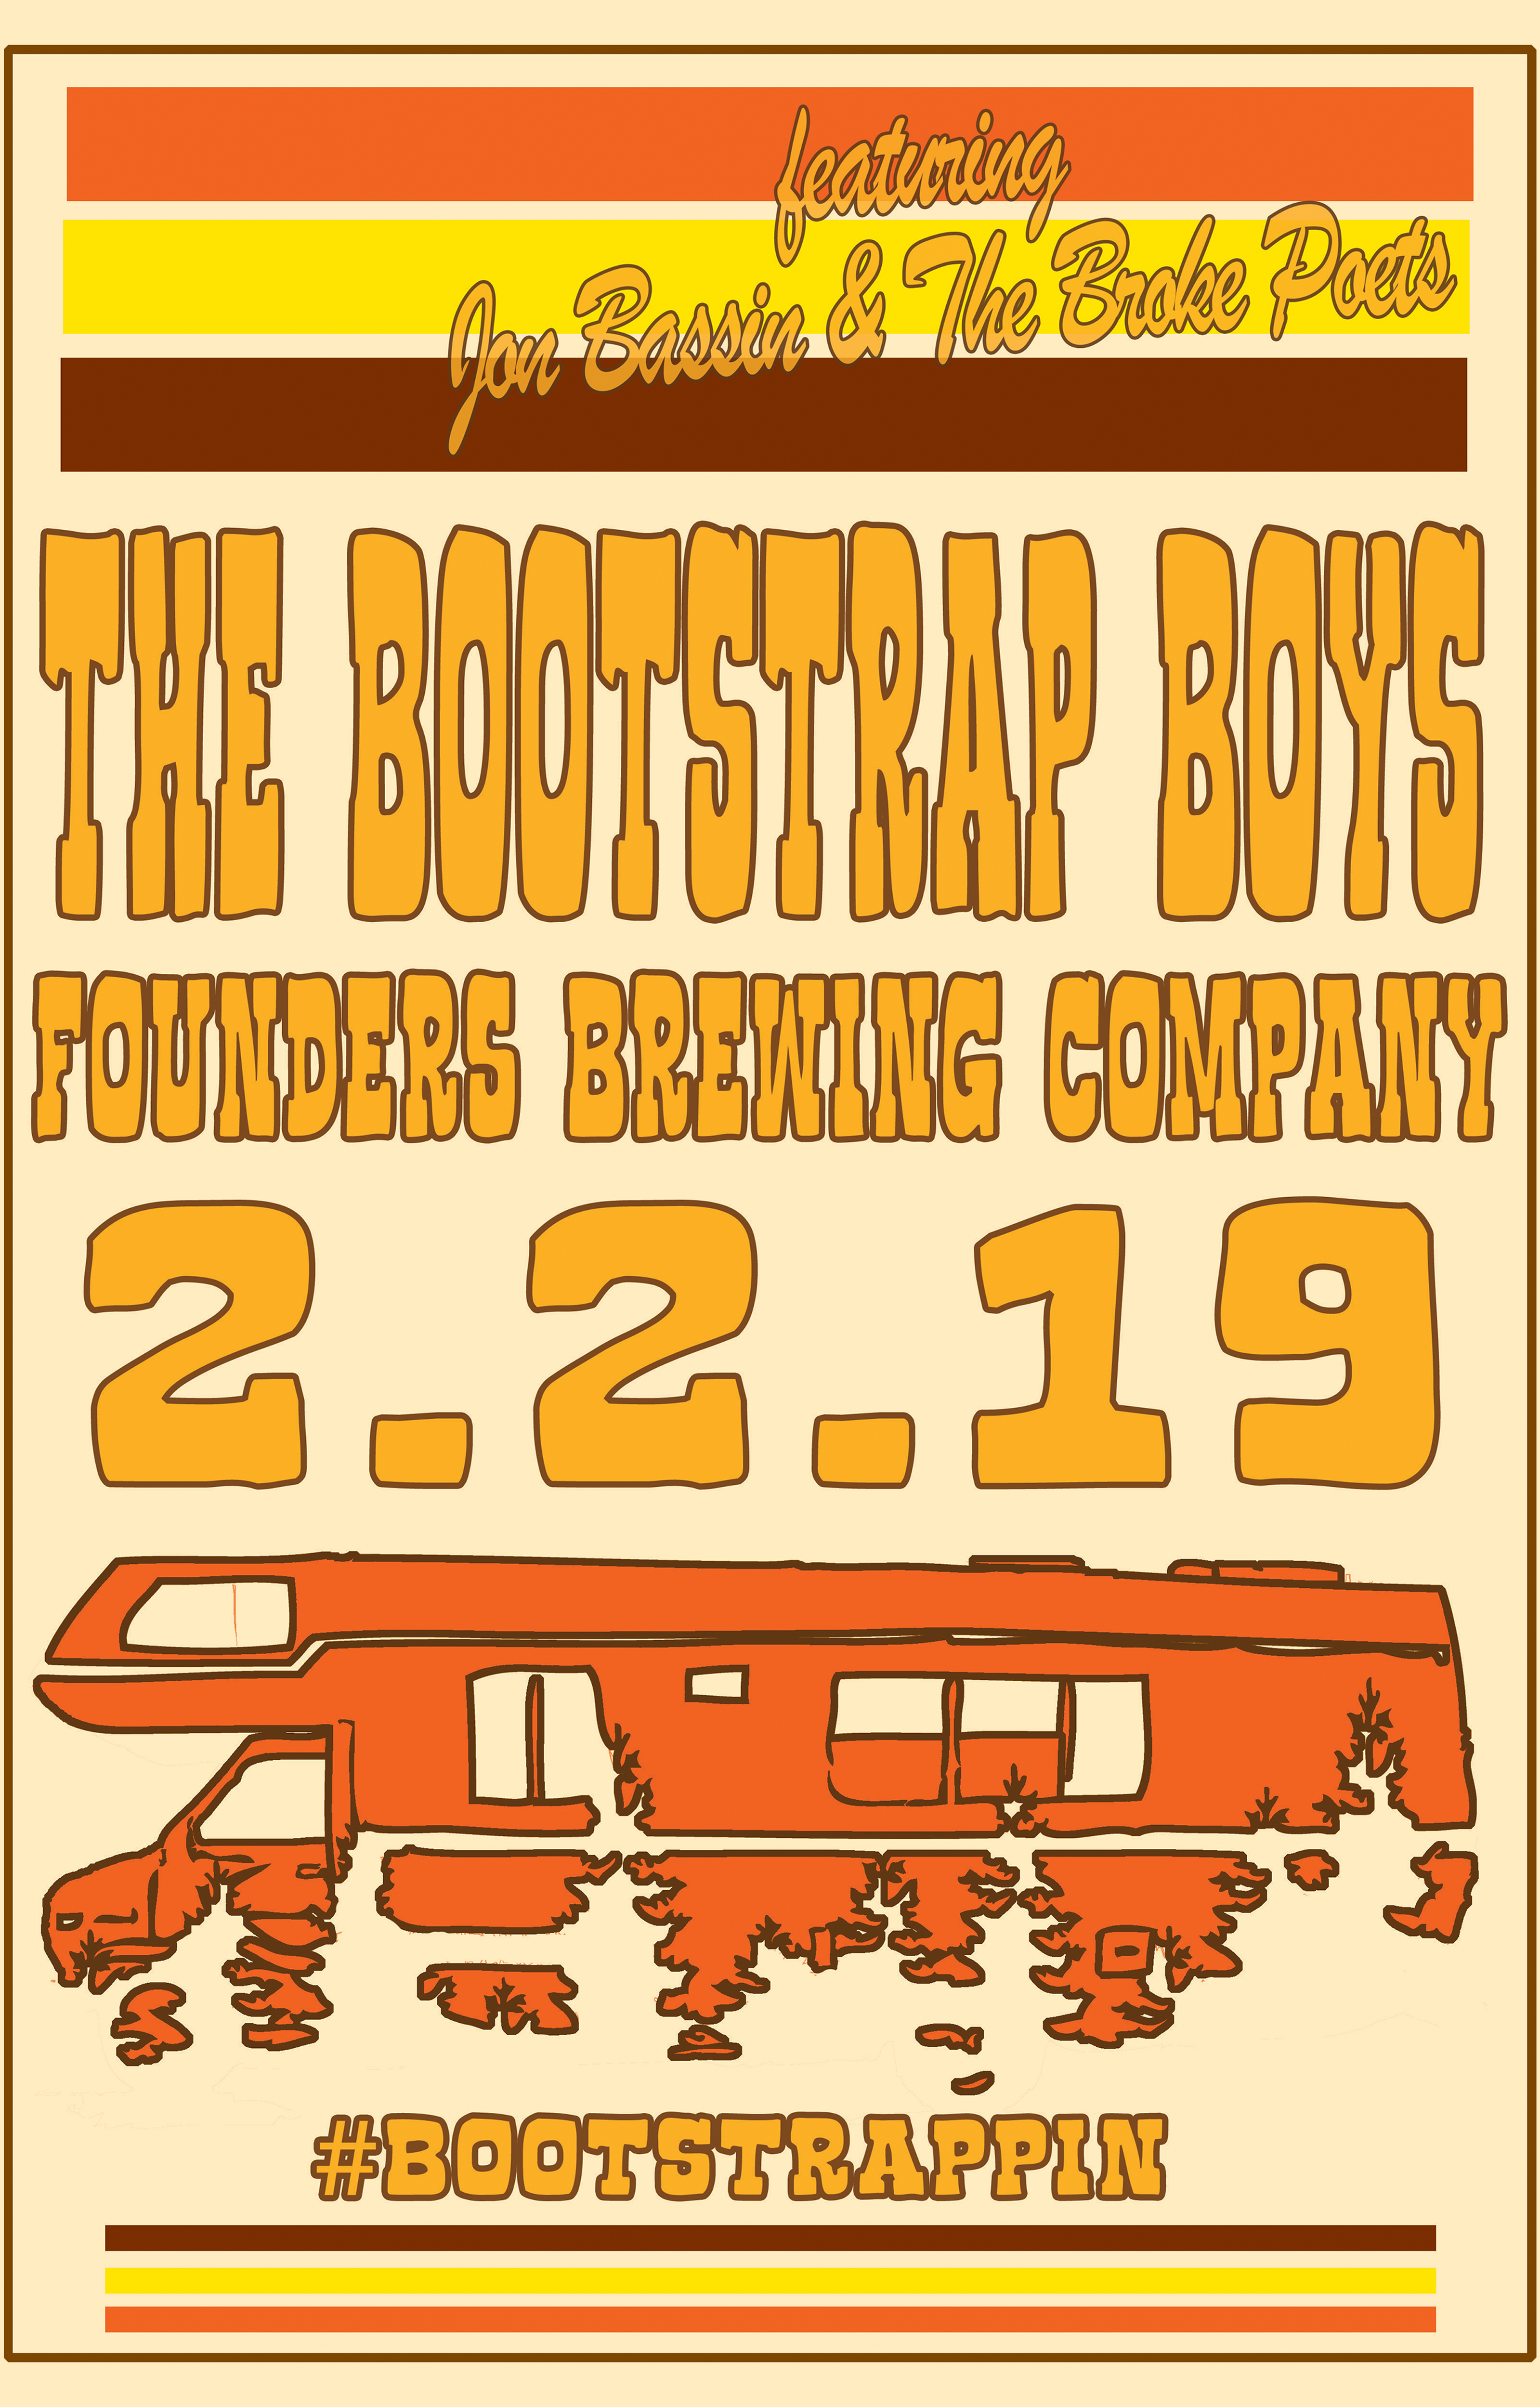 The Bootstrap Boys event poster